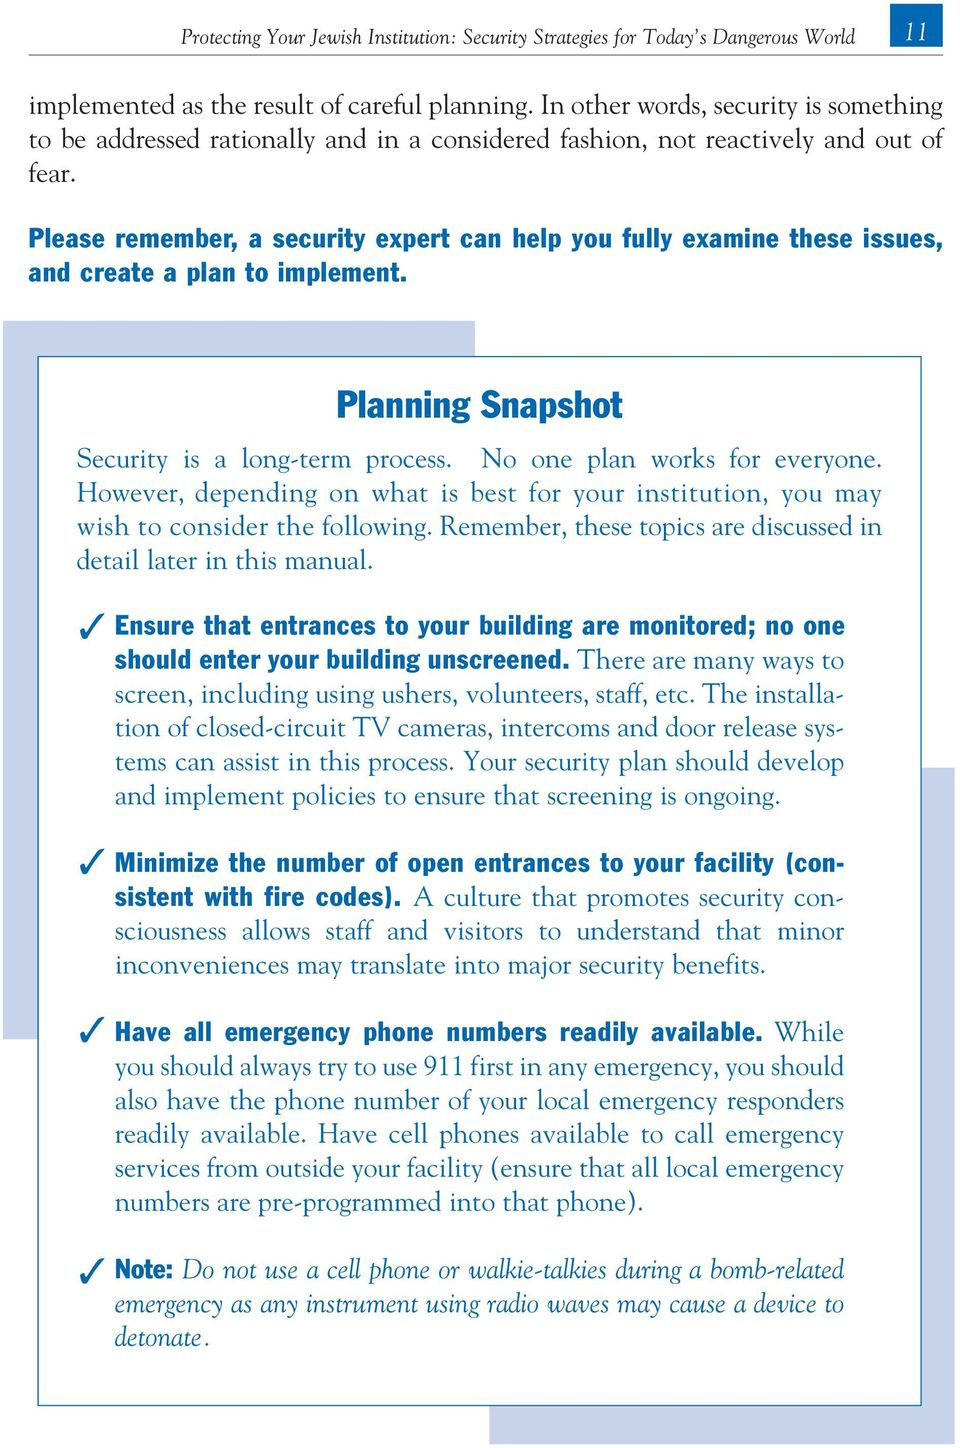 Please remember, a security expert can help you fully examine these issues, and create a plan to implement. Planning Snapshot Security is a long-term process. No one plan works for everyone.